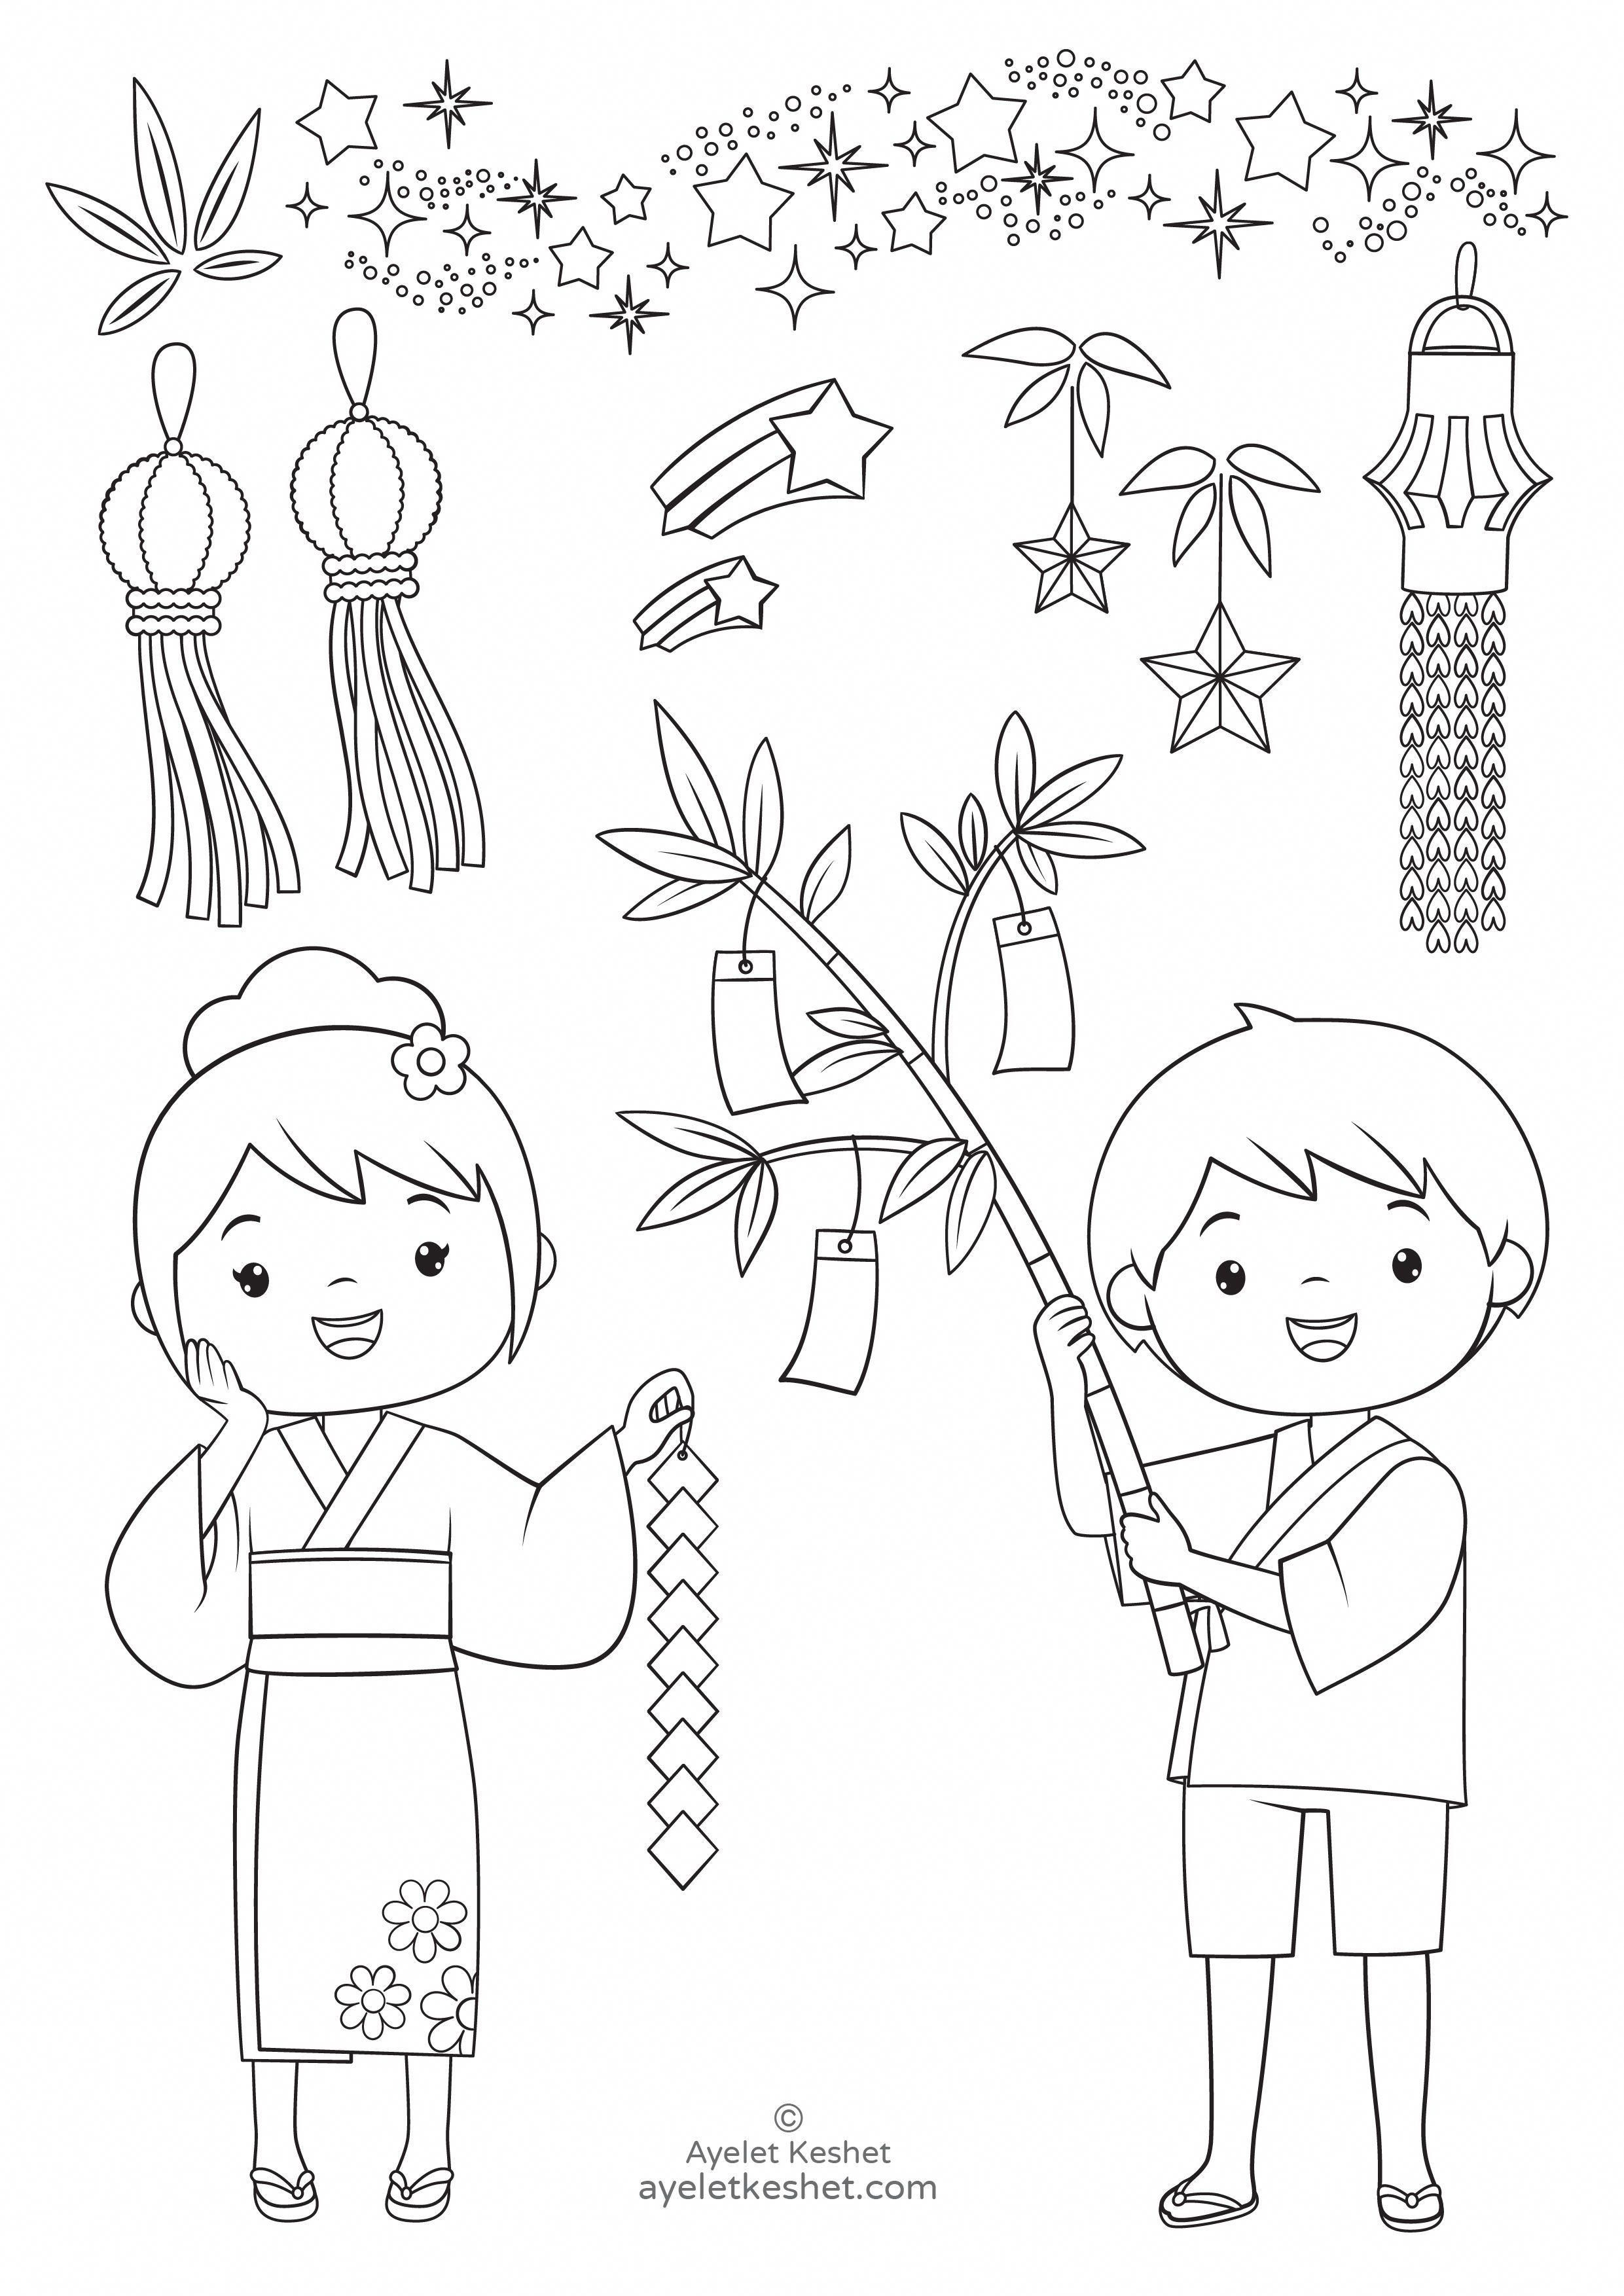 Free Coloring Pages About Japan For Kids Ayelet Keshet Coloring Japan Japan For Kids Japan Crafts